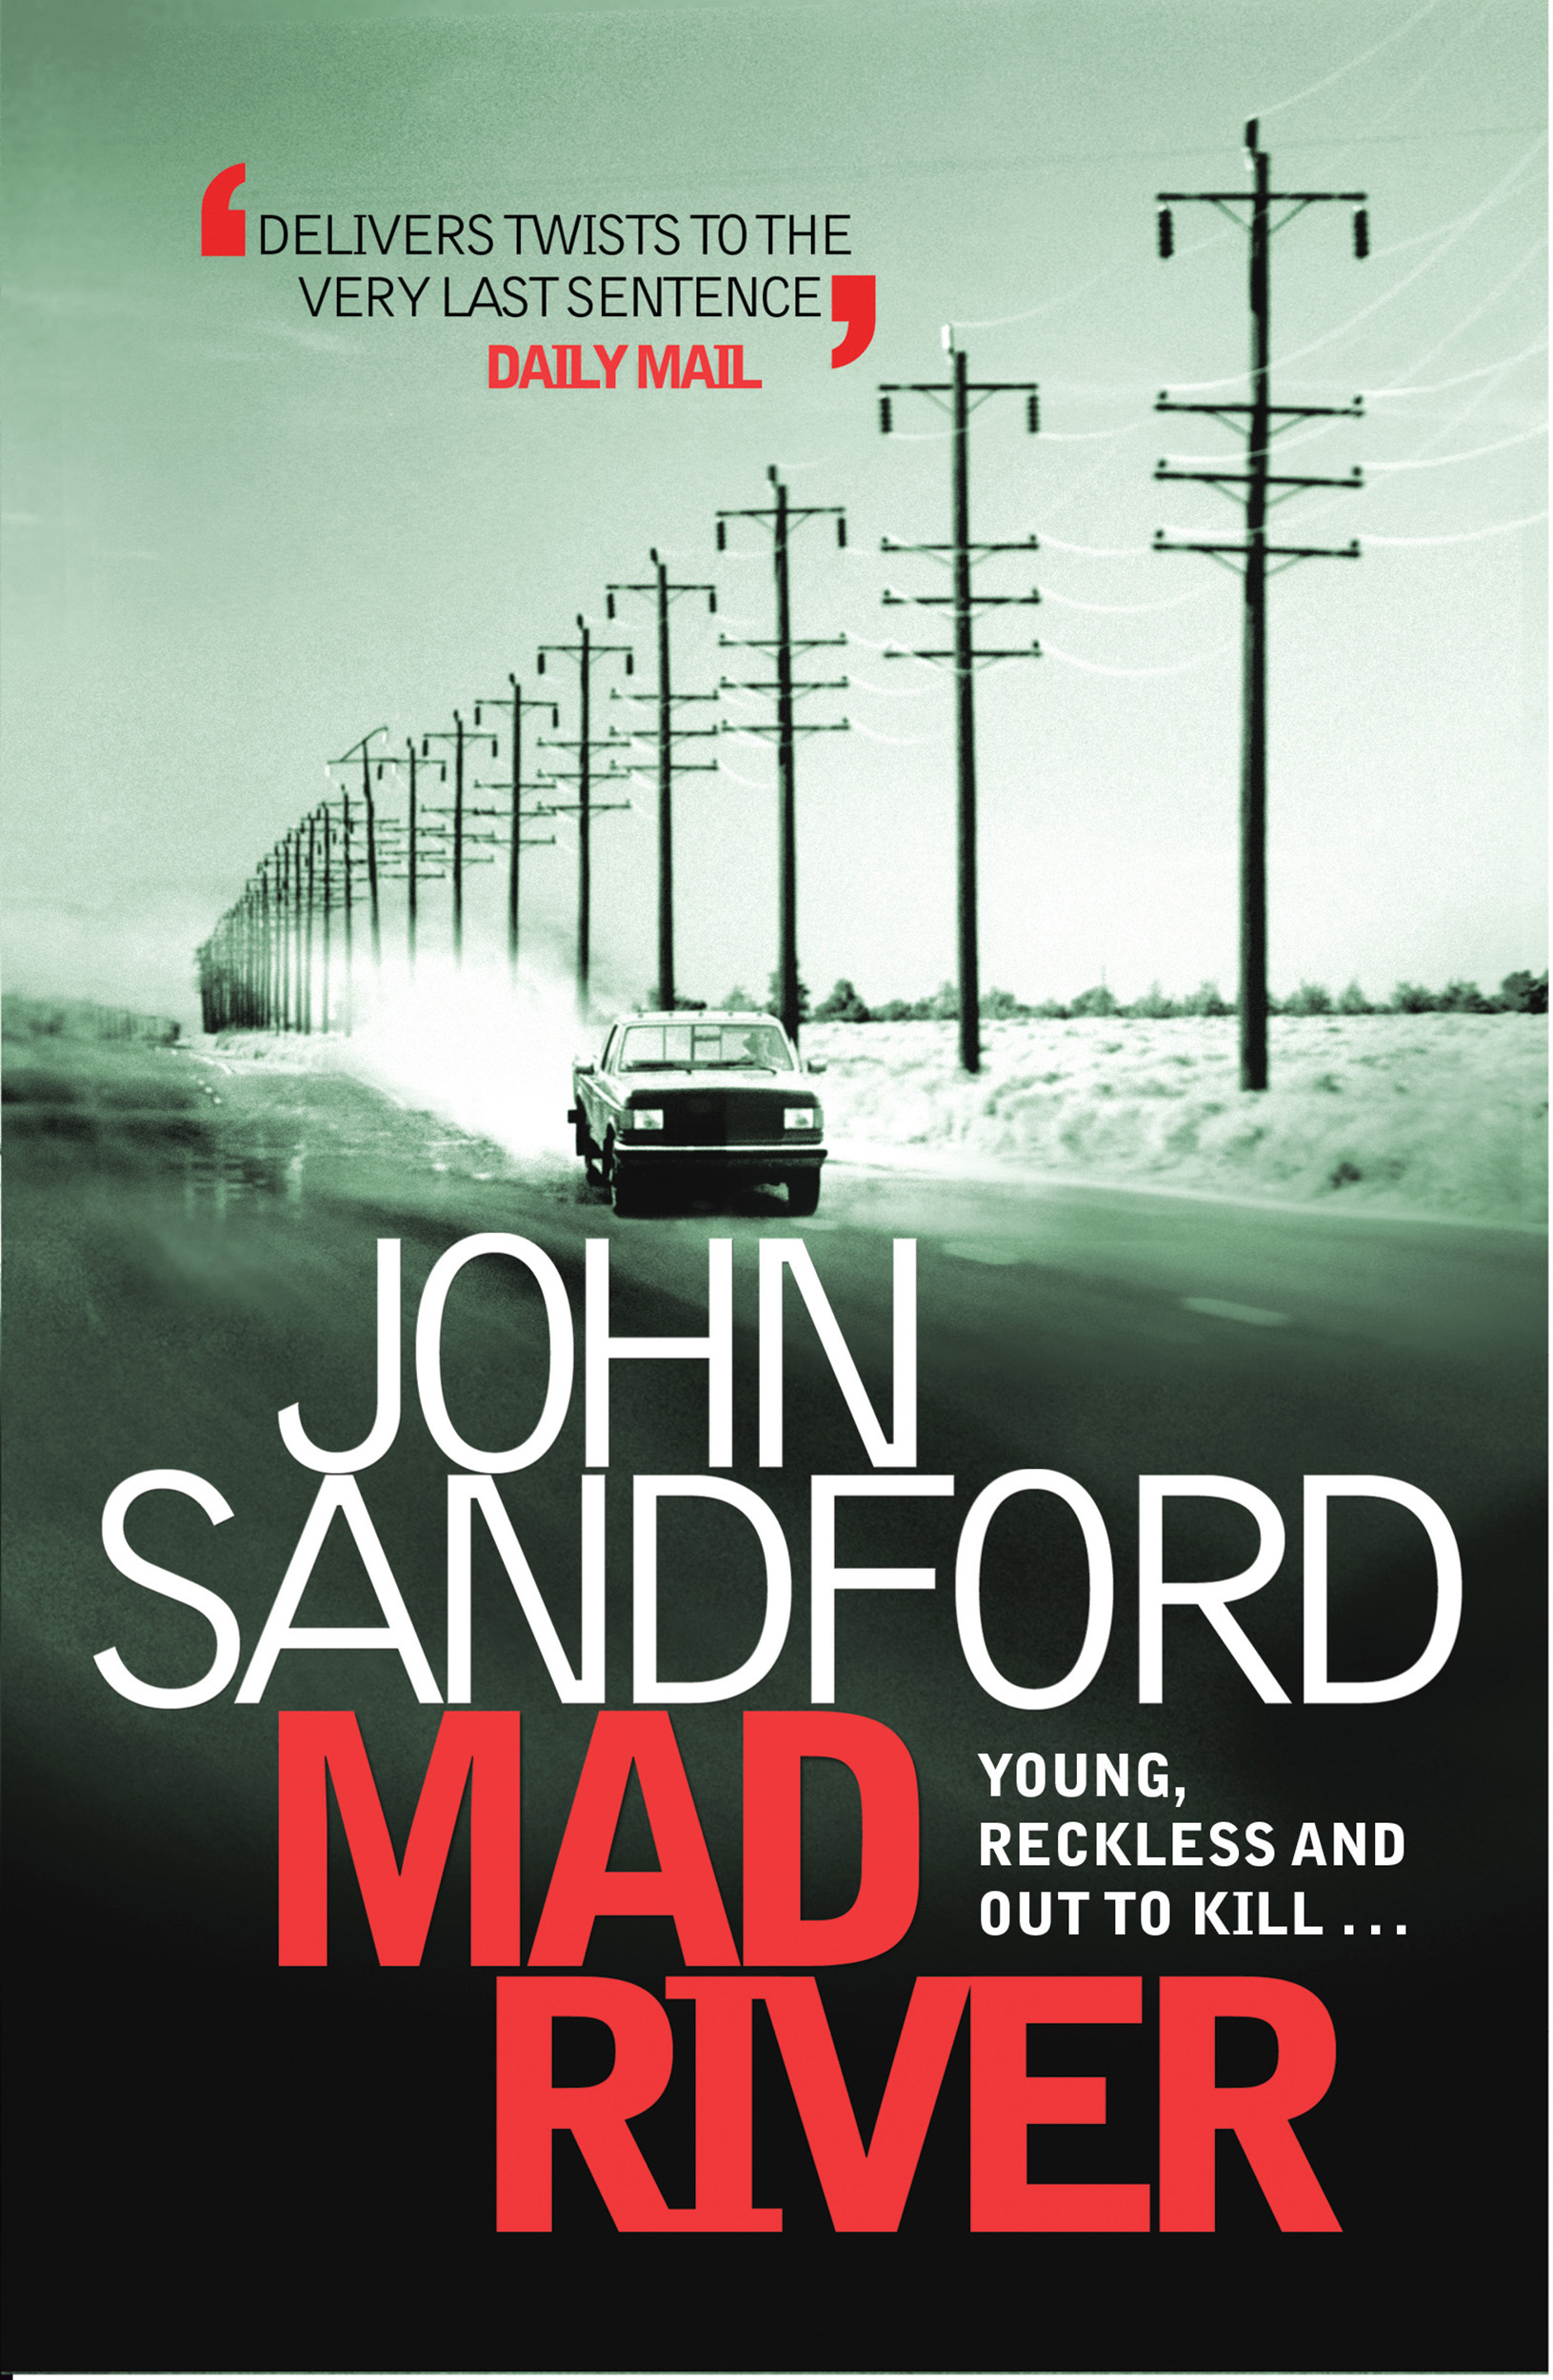 Mad River Book by John Sandford ficial Publisher Page